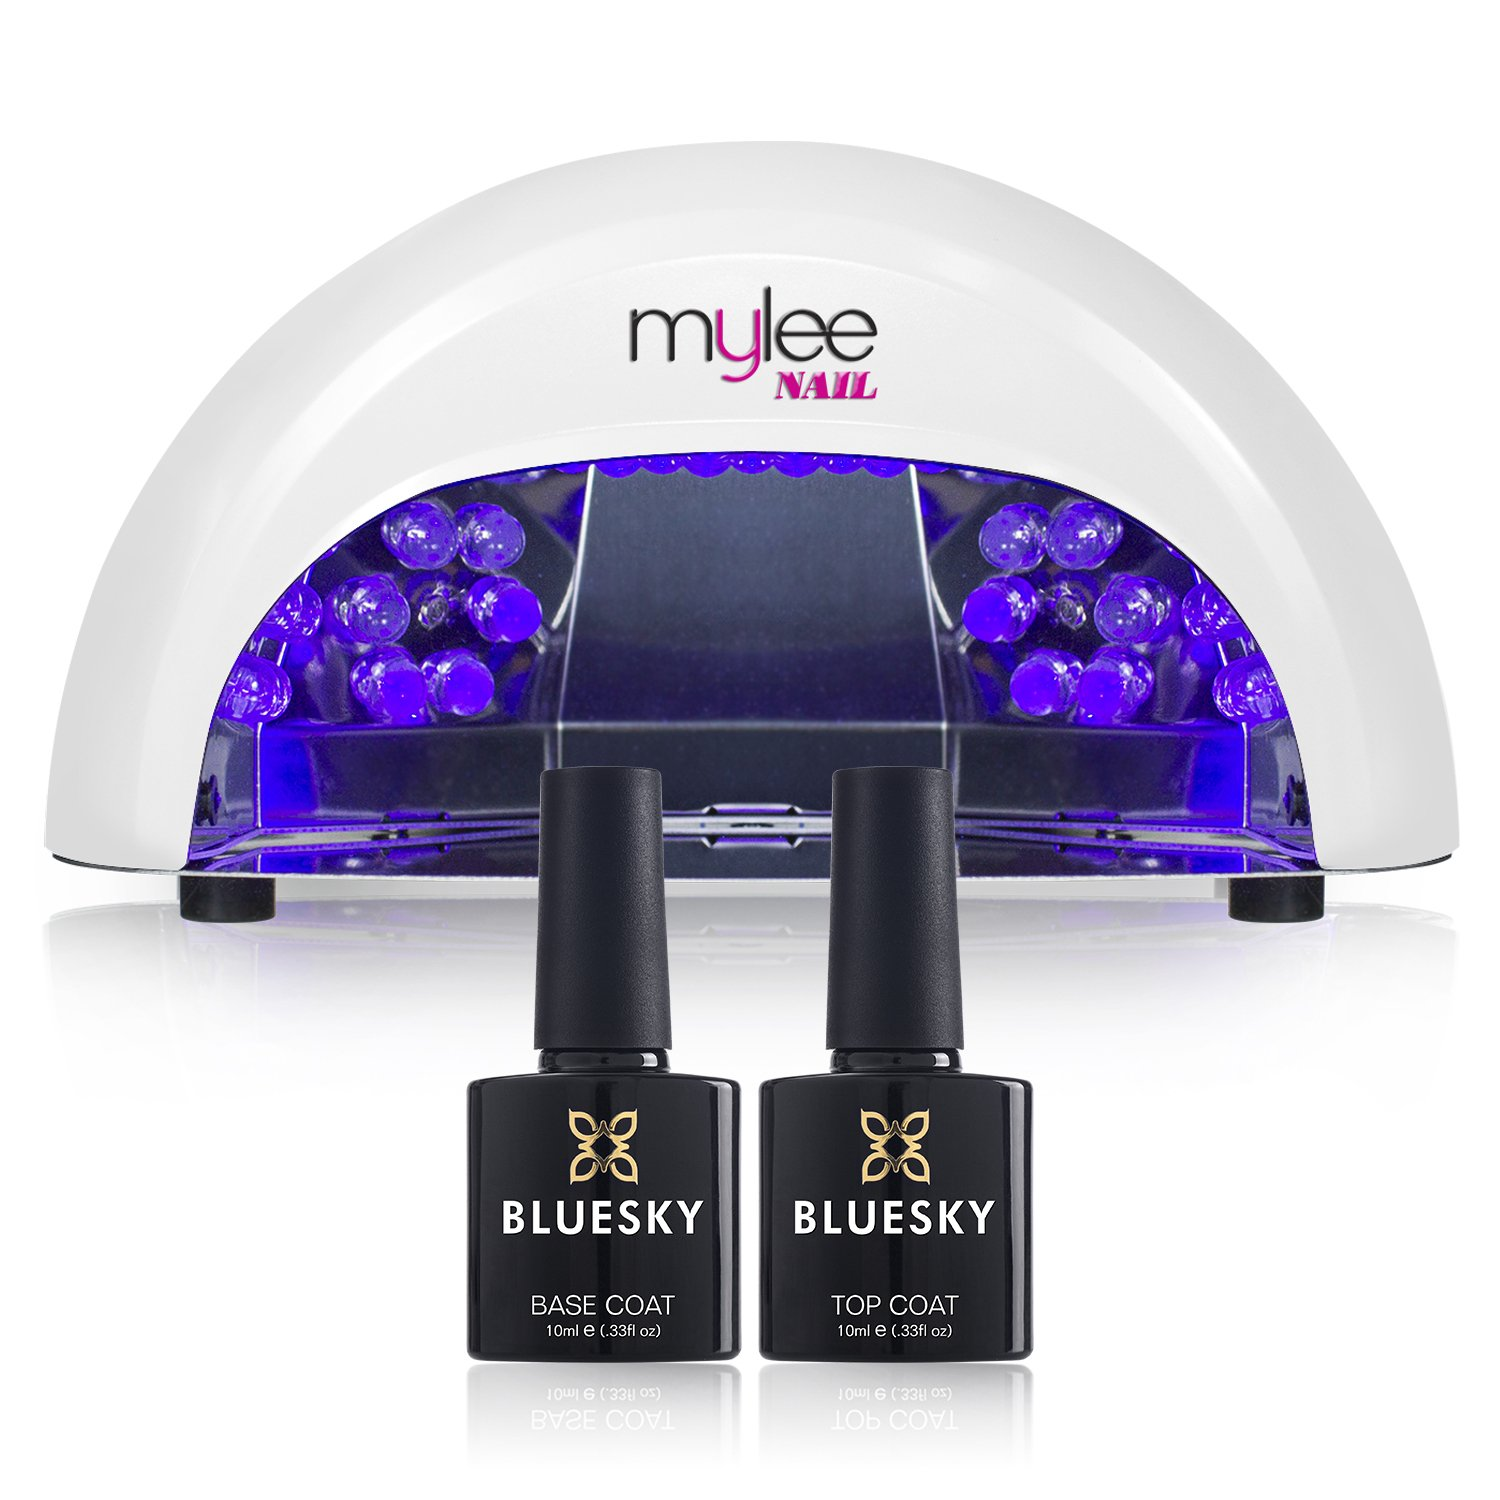 Mylee White LED 5-Finger 12 Watt Dome Lamp Includes Bluesky Gel Polish Gel Nail Polish Top and Base Coat, Free. For Gel Nail Perfection Every Time